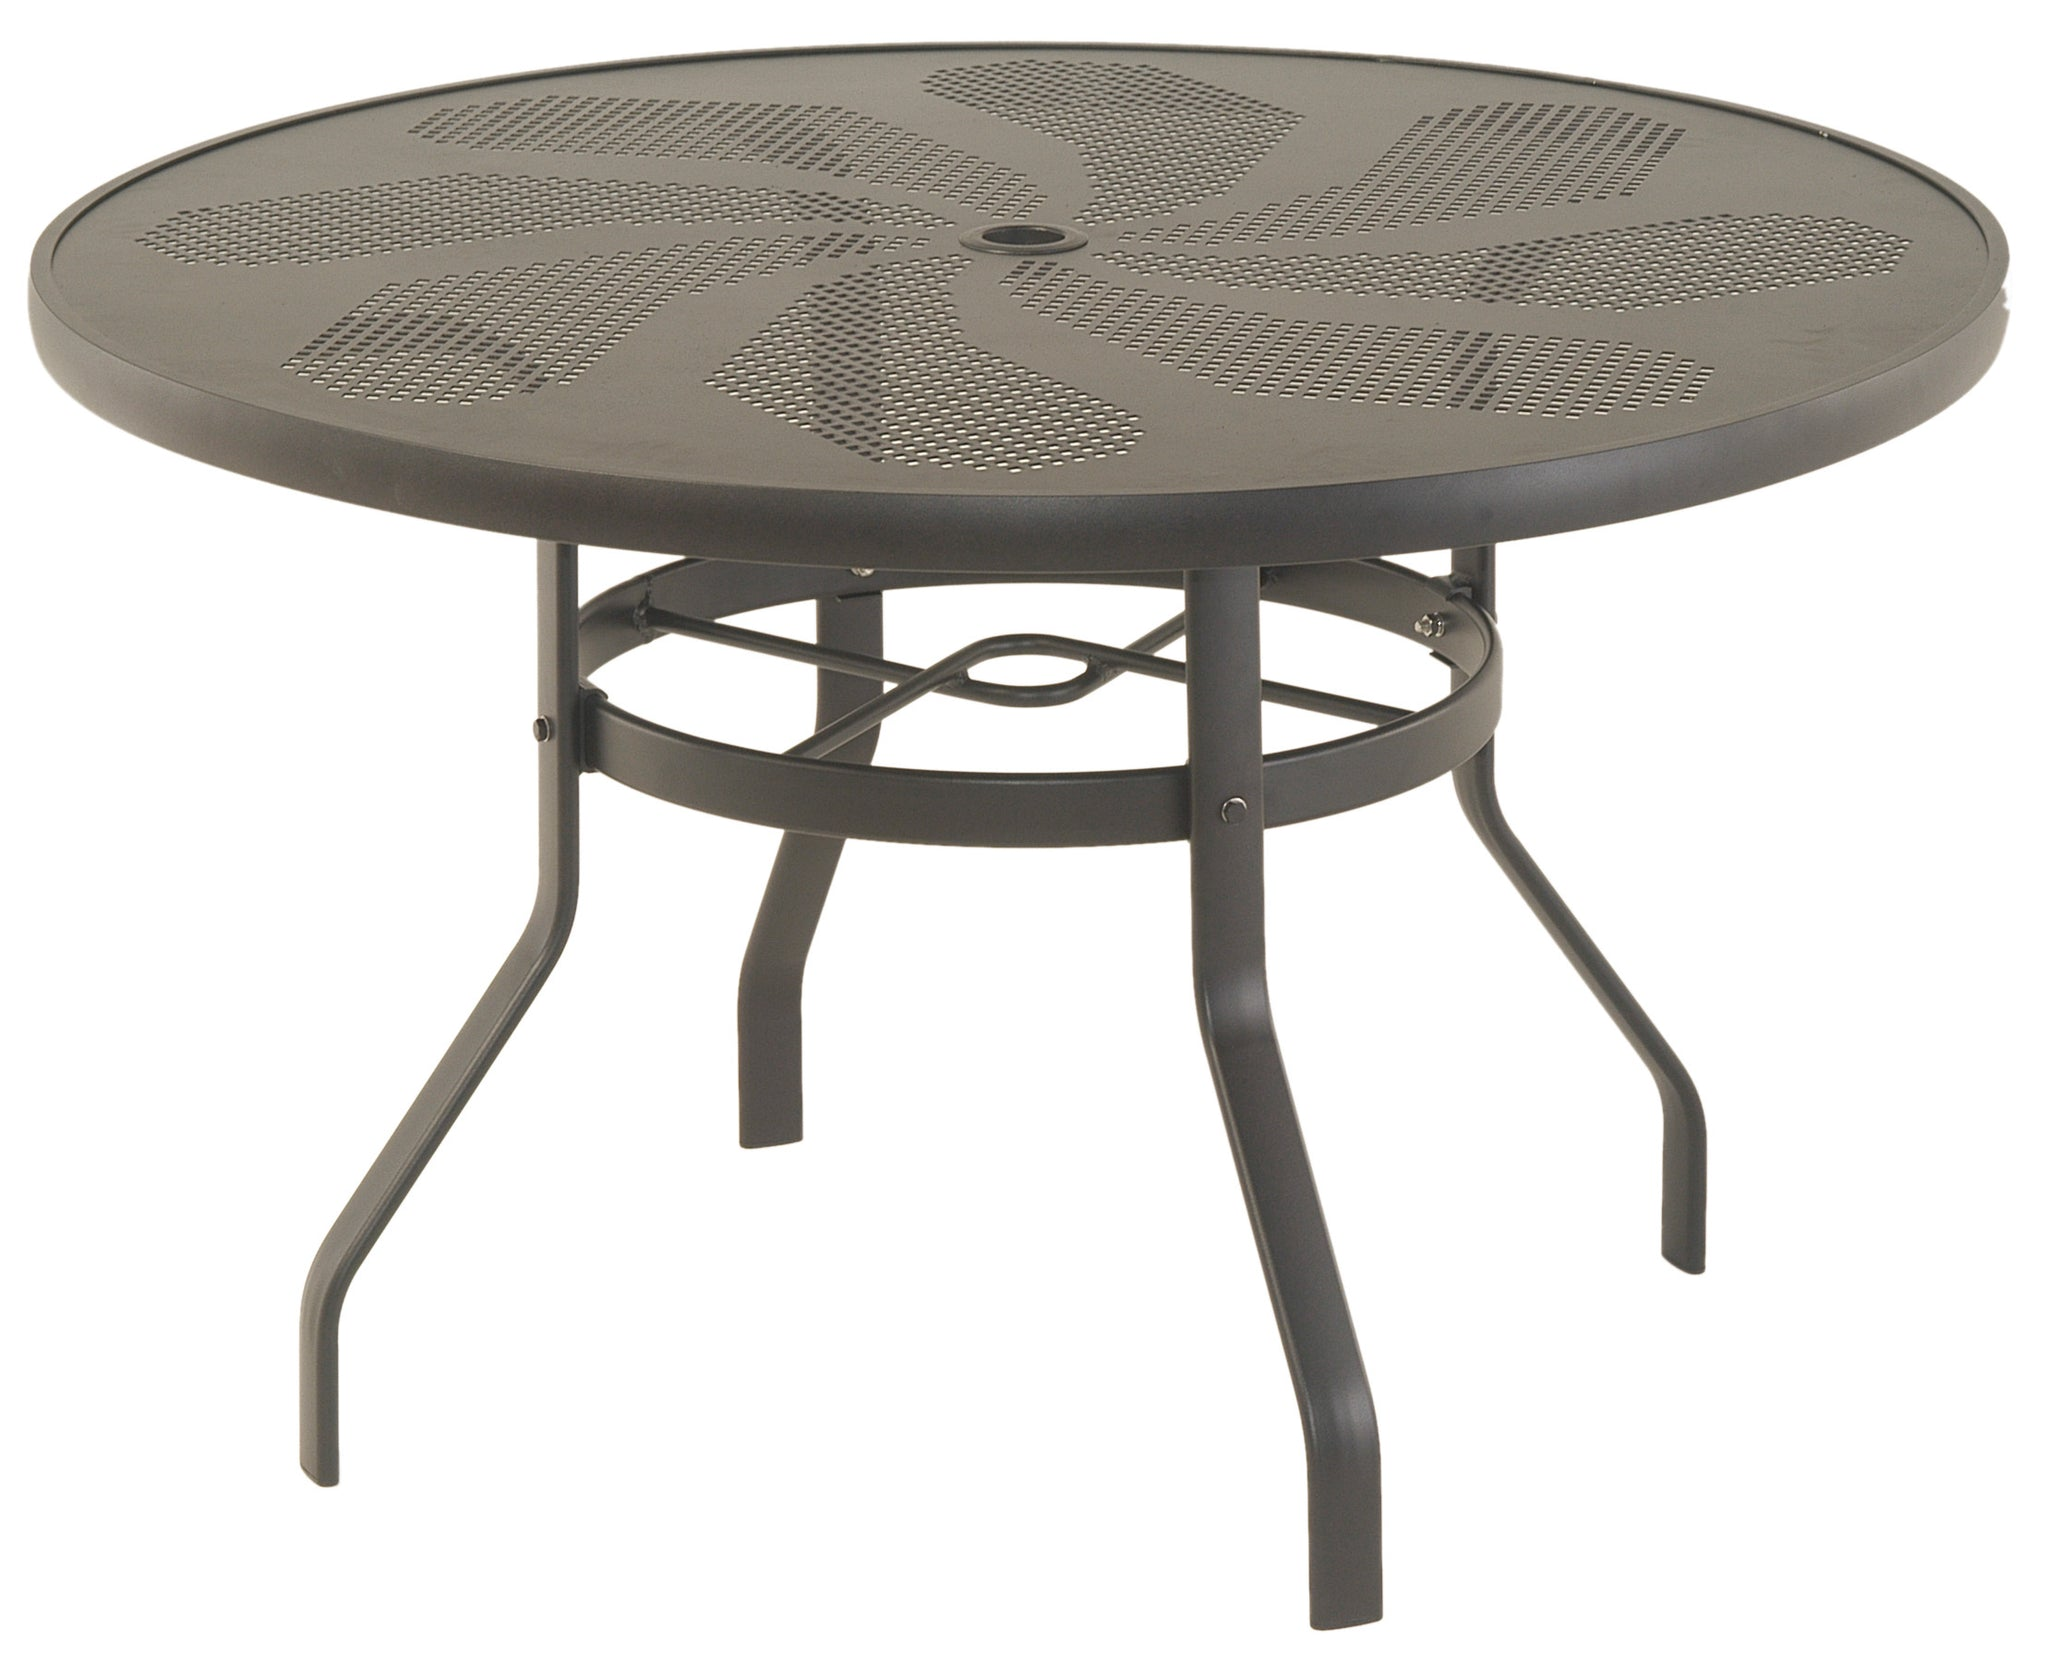 "Stamped Aluminum 48"" Round Dining Table"